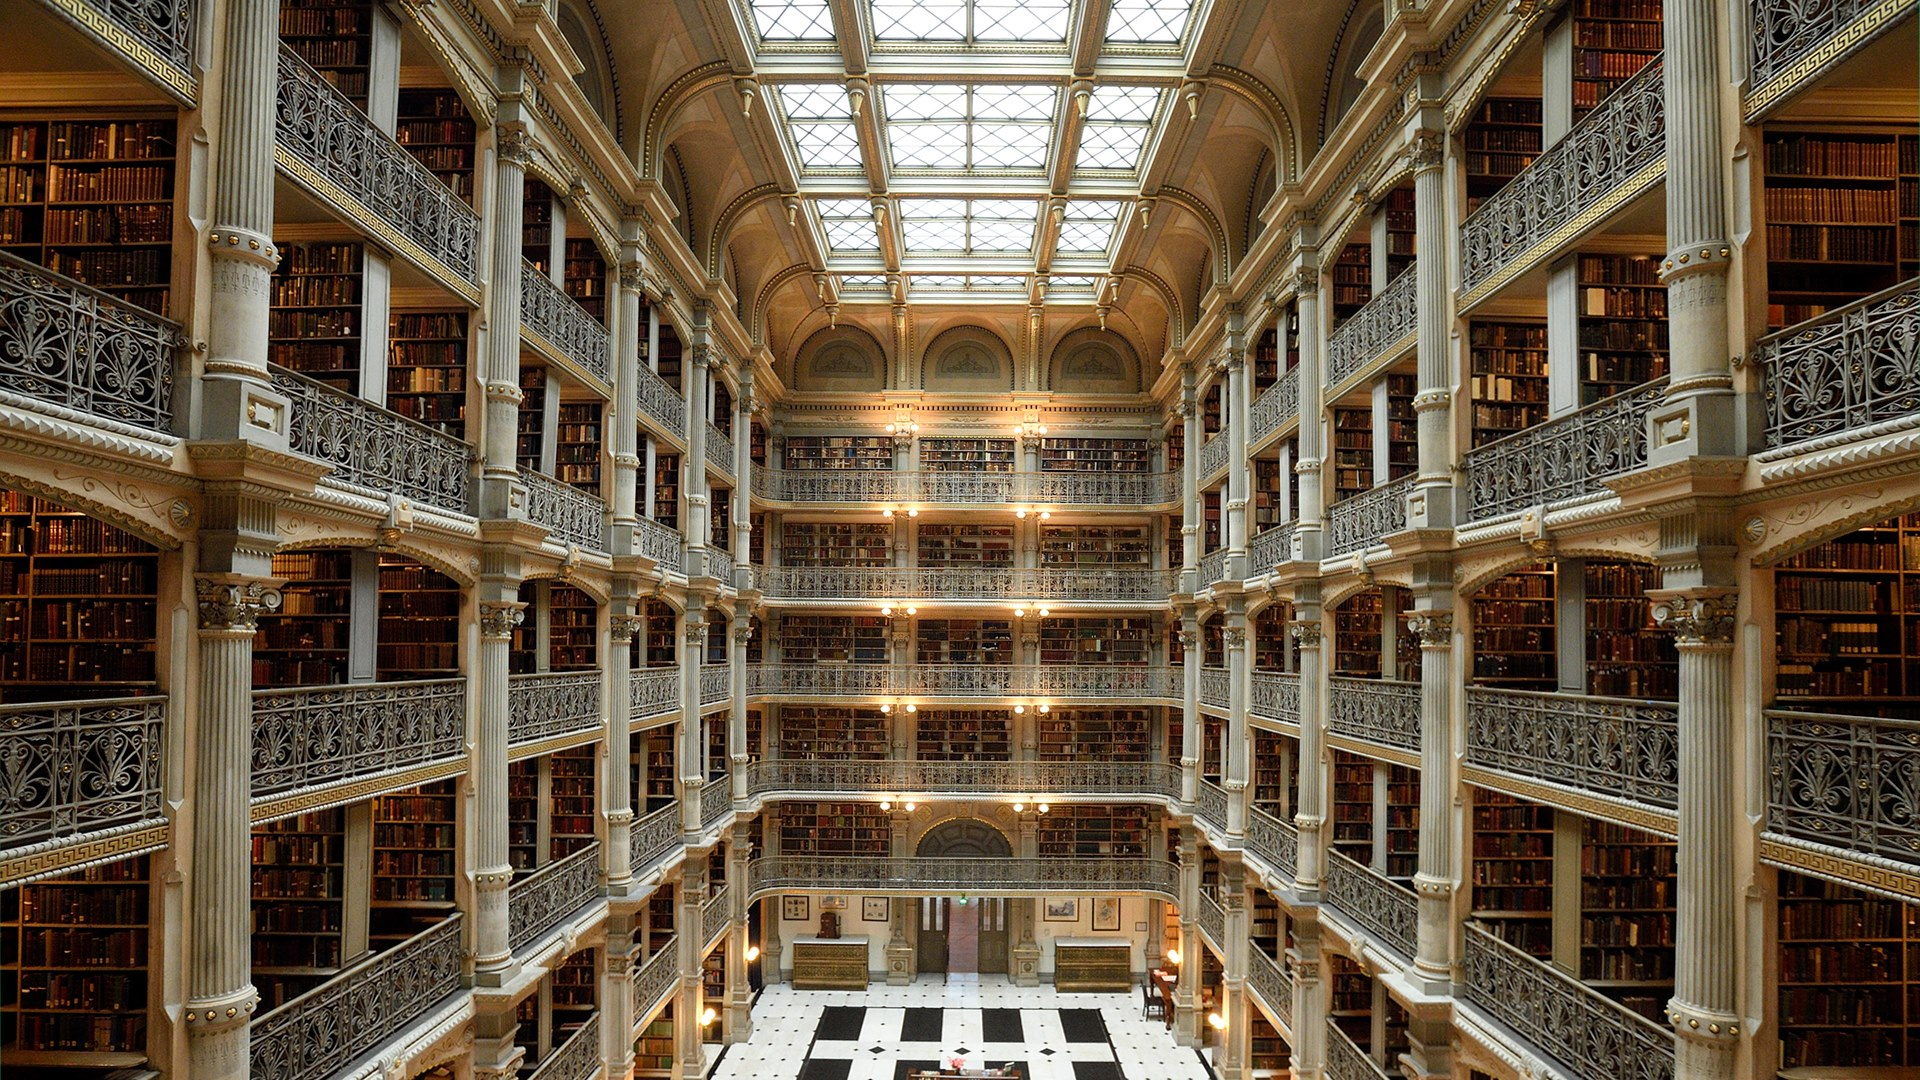 Lunch with the Libraries - A Curator's Tour of the George Peabody Library header image